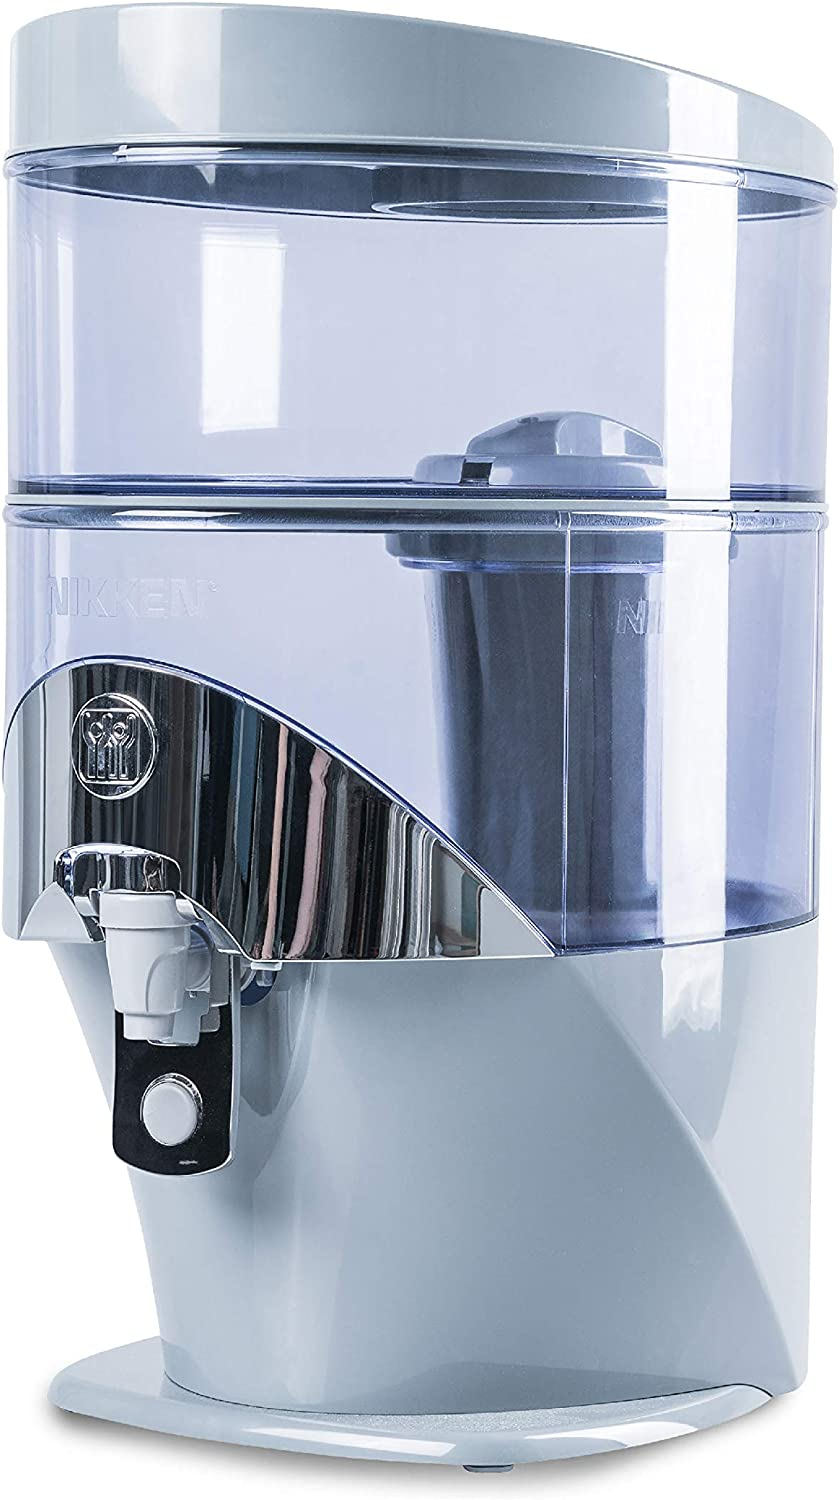 Nikken 1 Waterfall Gravity Water Filter Purifier System (1384) - PiMag Water Technology, Produces Alkaline Water Good for Health, Impurities and Other Contaminants in Water - PiMag Water Purifier